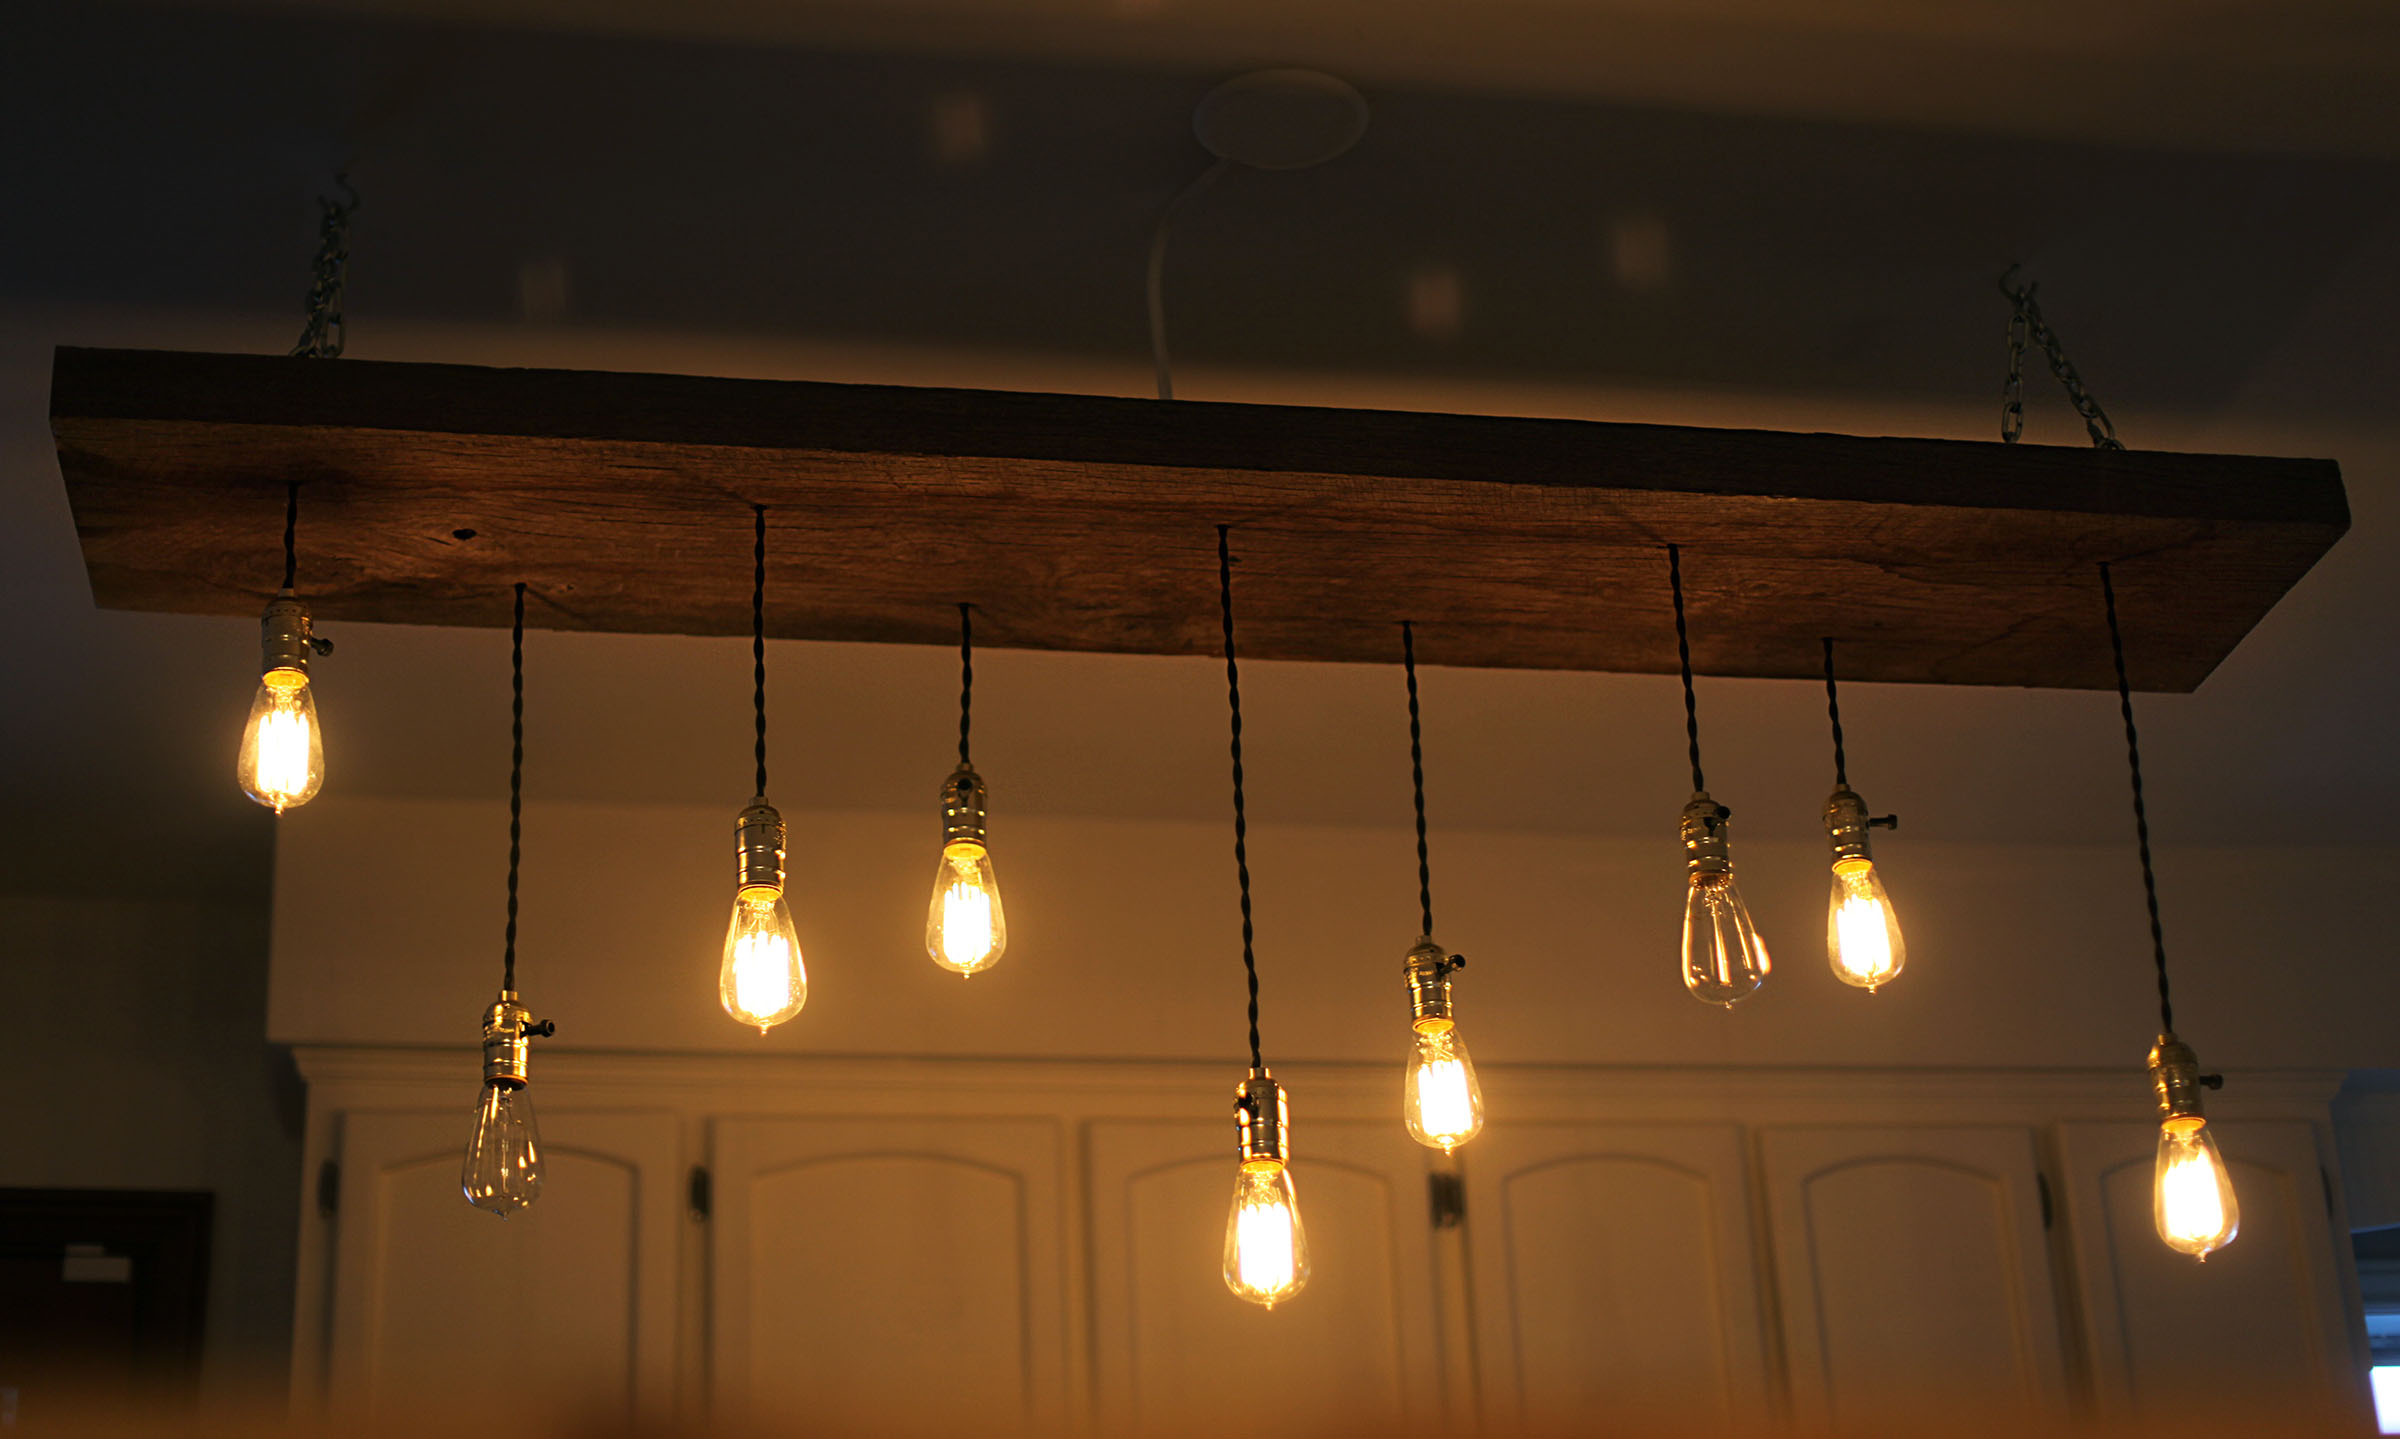 Diy reclaimed lumber hanging edison bulb chandelier unmaintained placing junction boxes arubaitofo Image collections